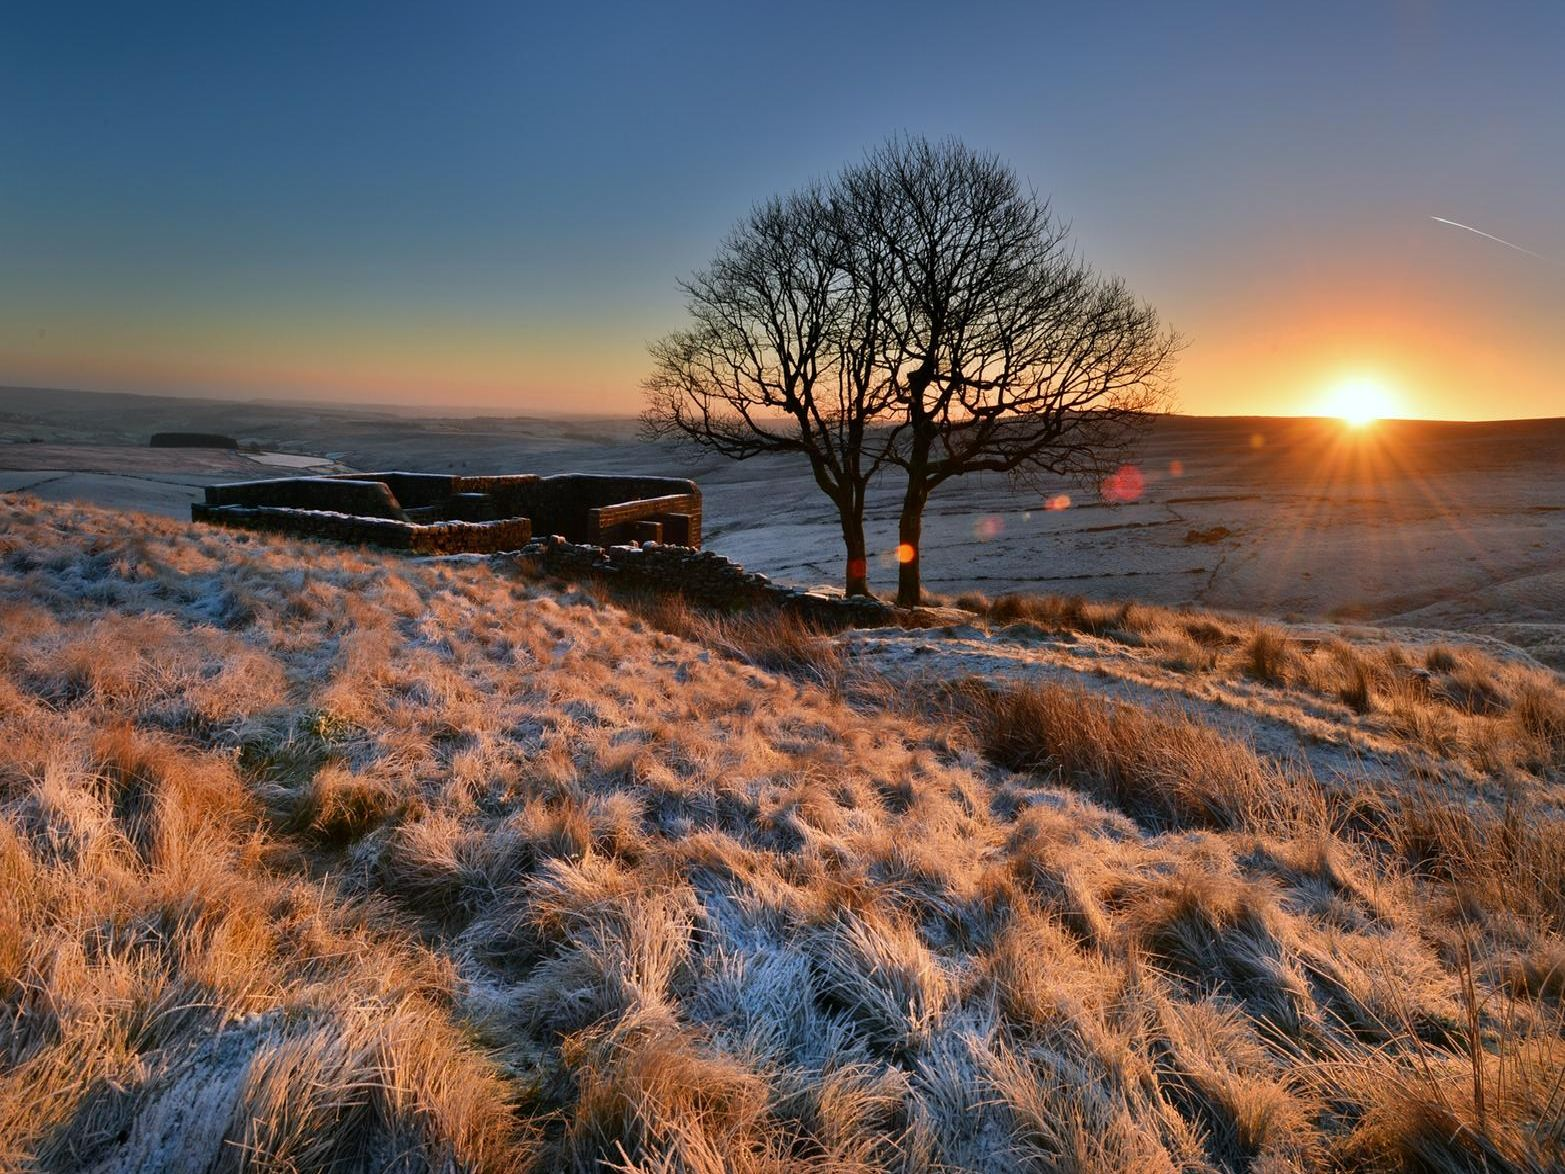 The Sun rises above a frosty Top Withens high in the Pennines above Haworth, the inspiration Wuthering Heights.